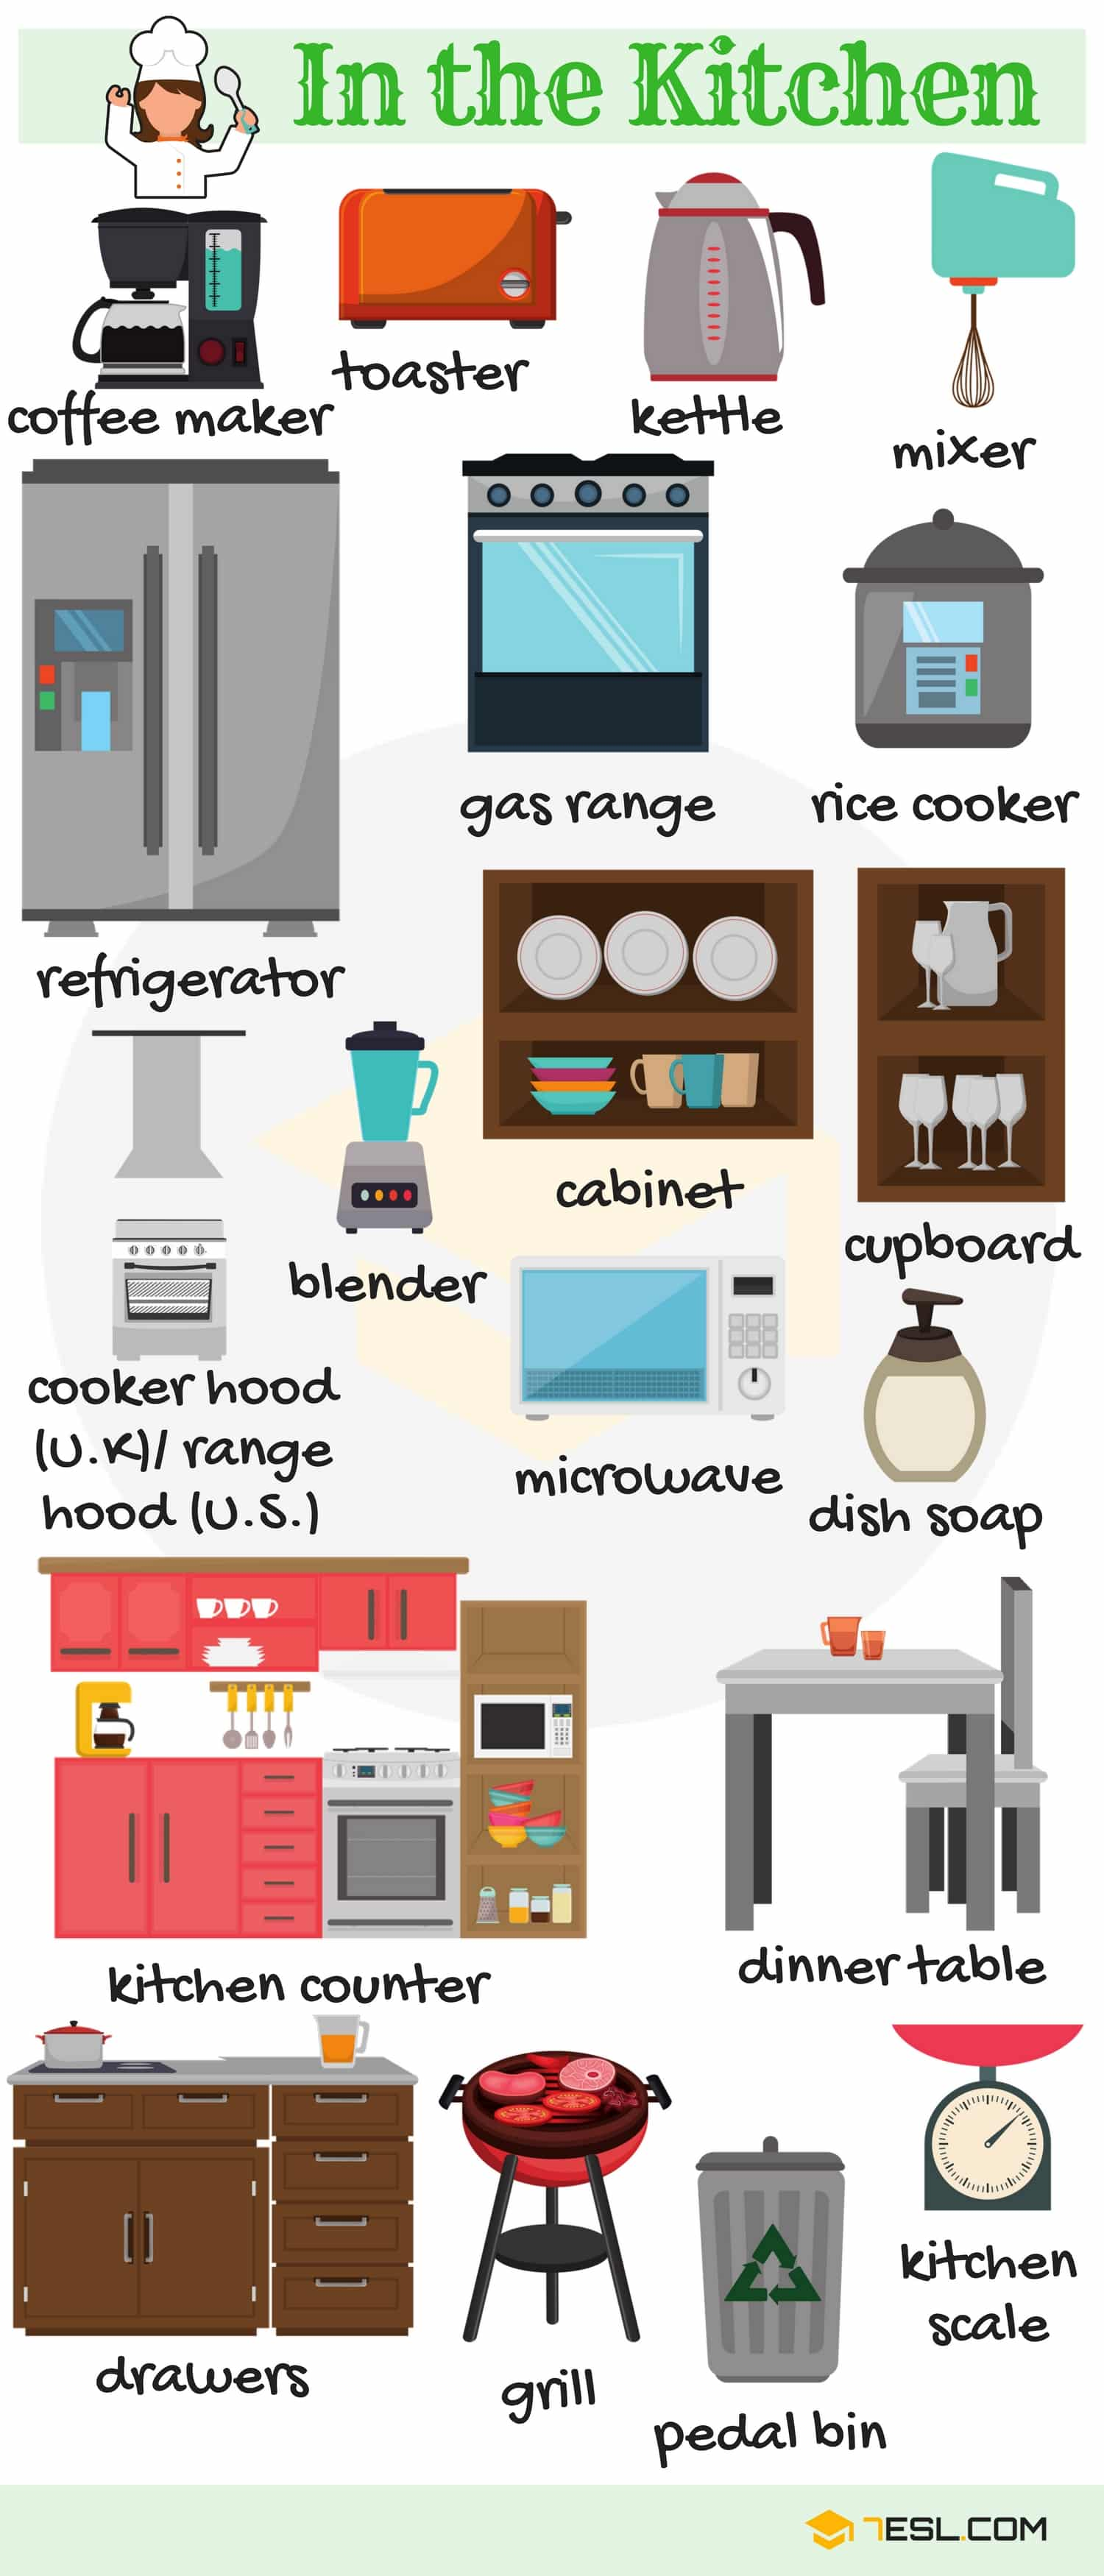 Things in the Kitchen | Kitchen Vocabulary with Pictures